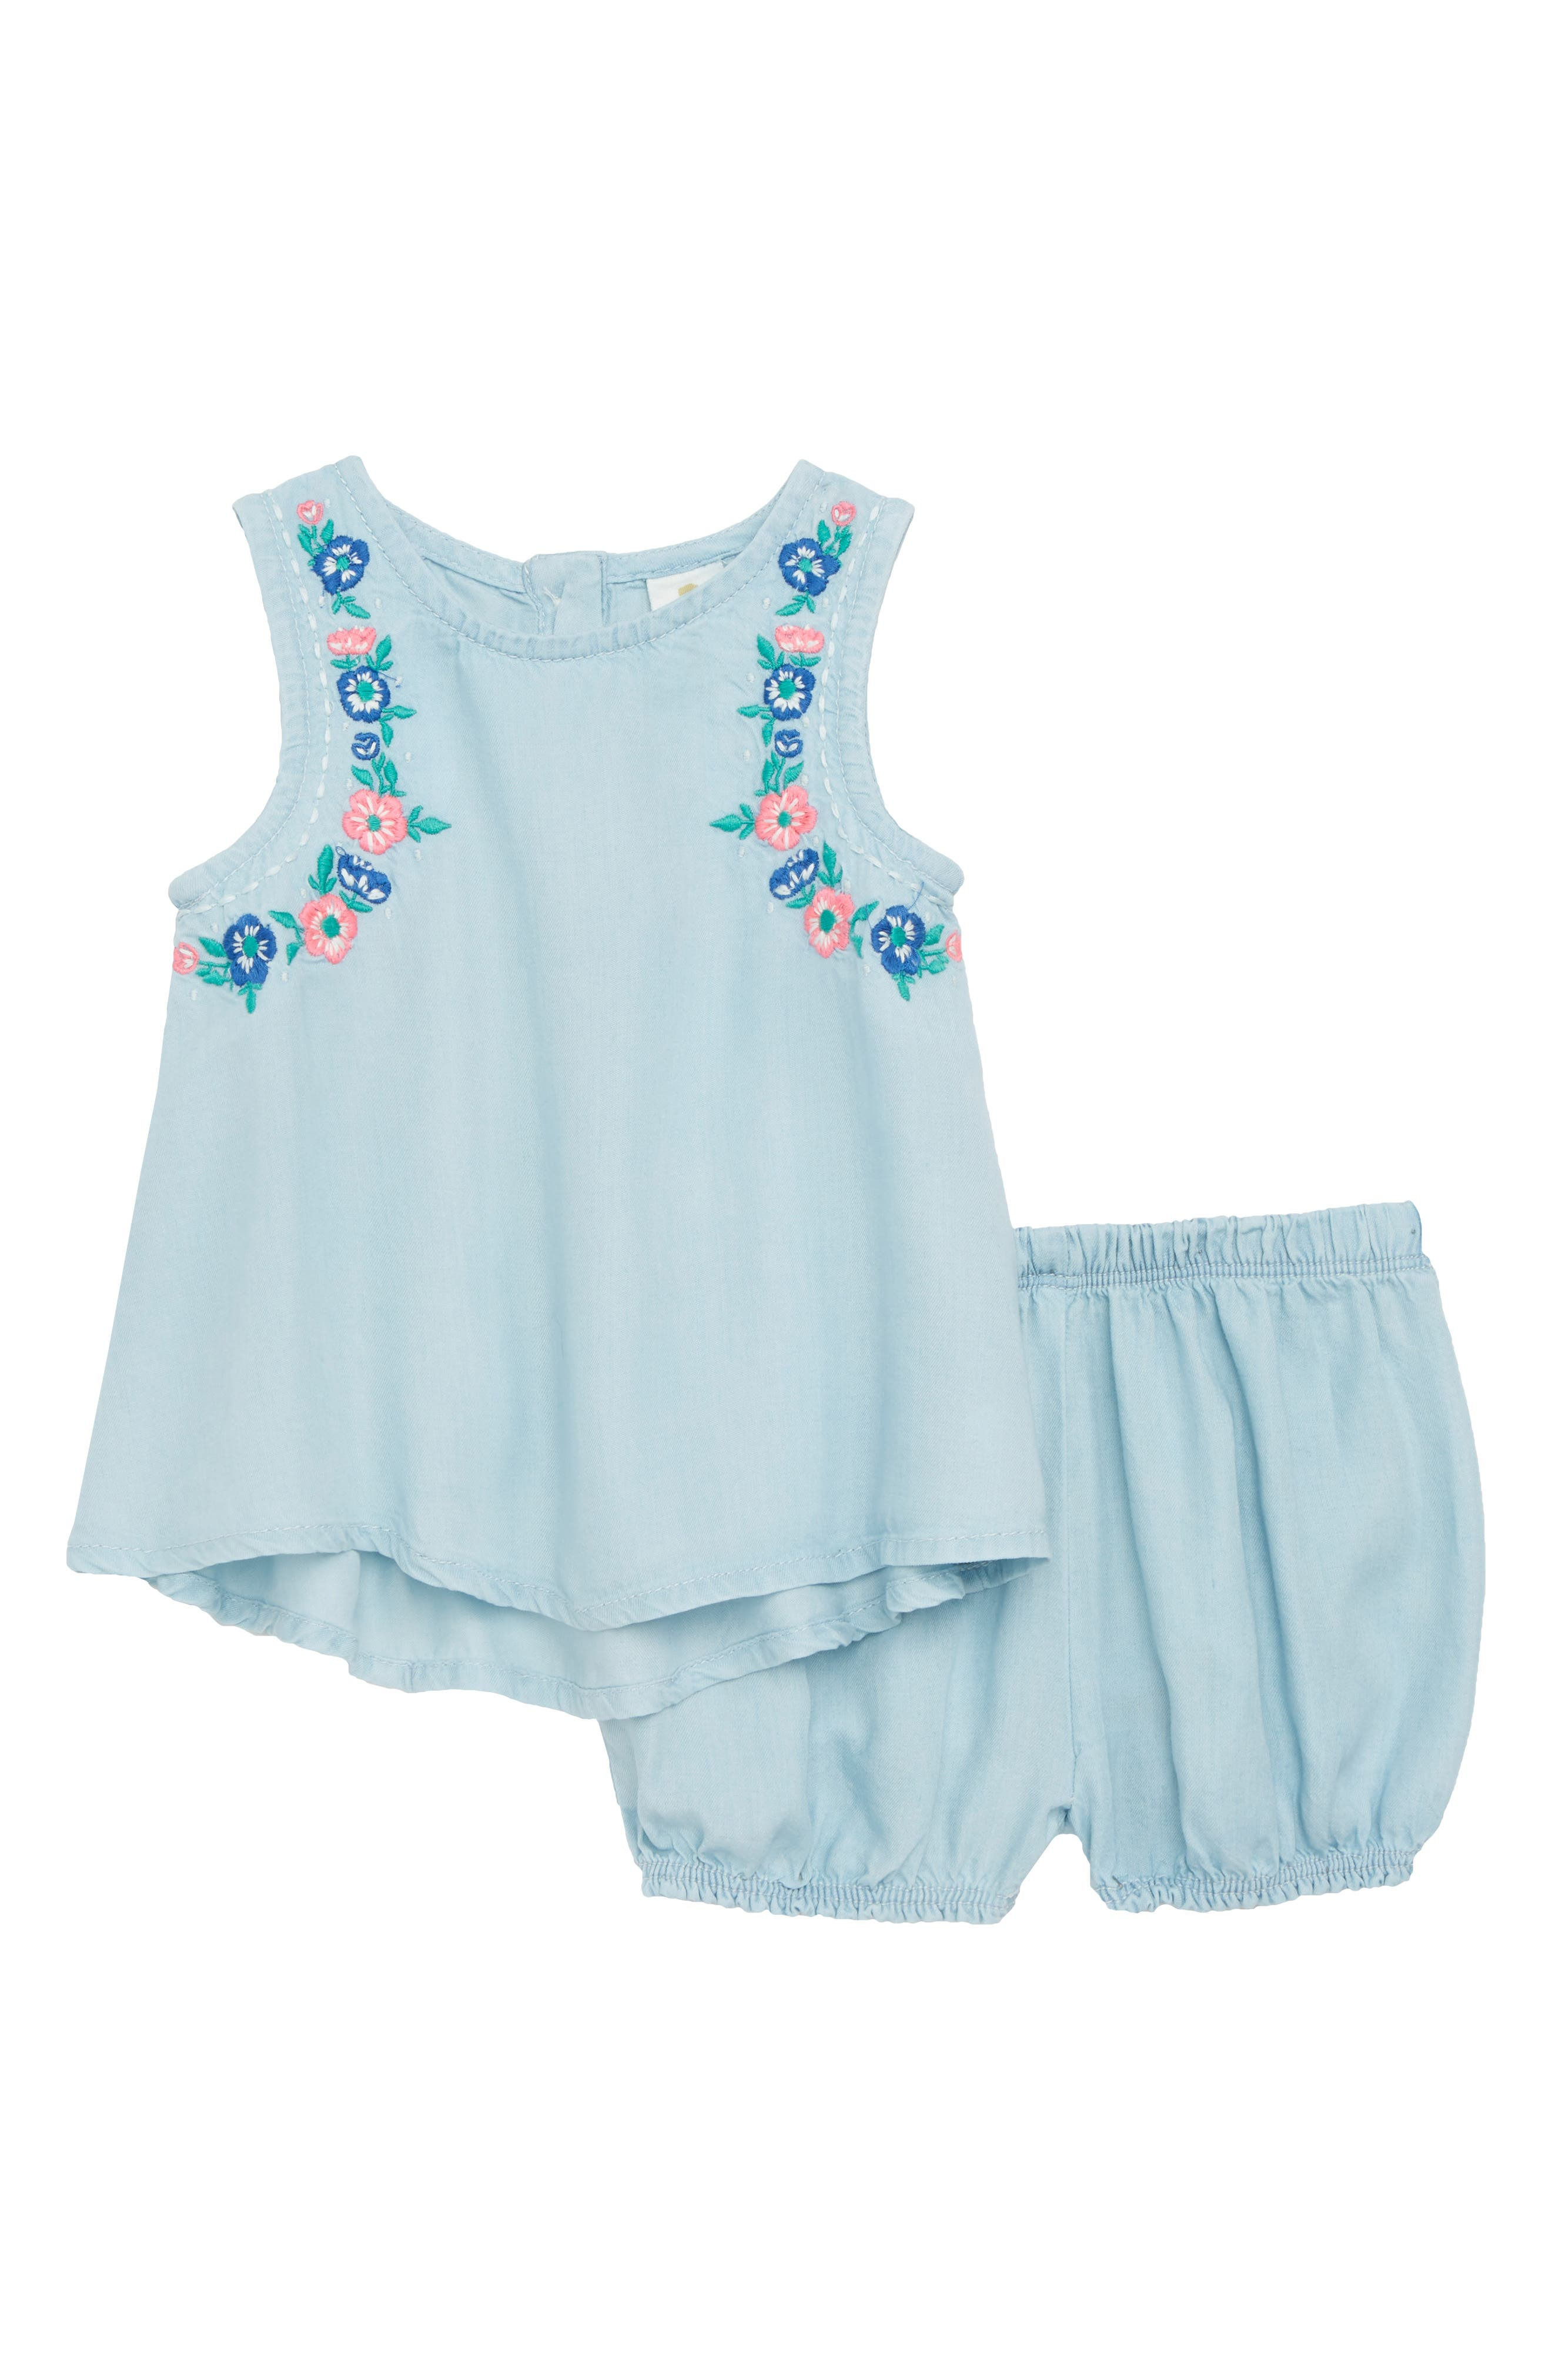 Embroidered Swing Top & Bloomers,                         Main,                         color, 450